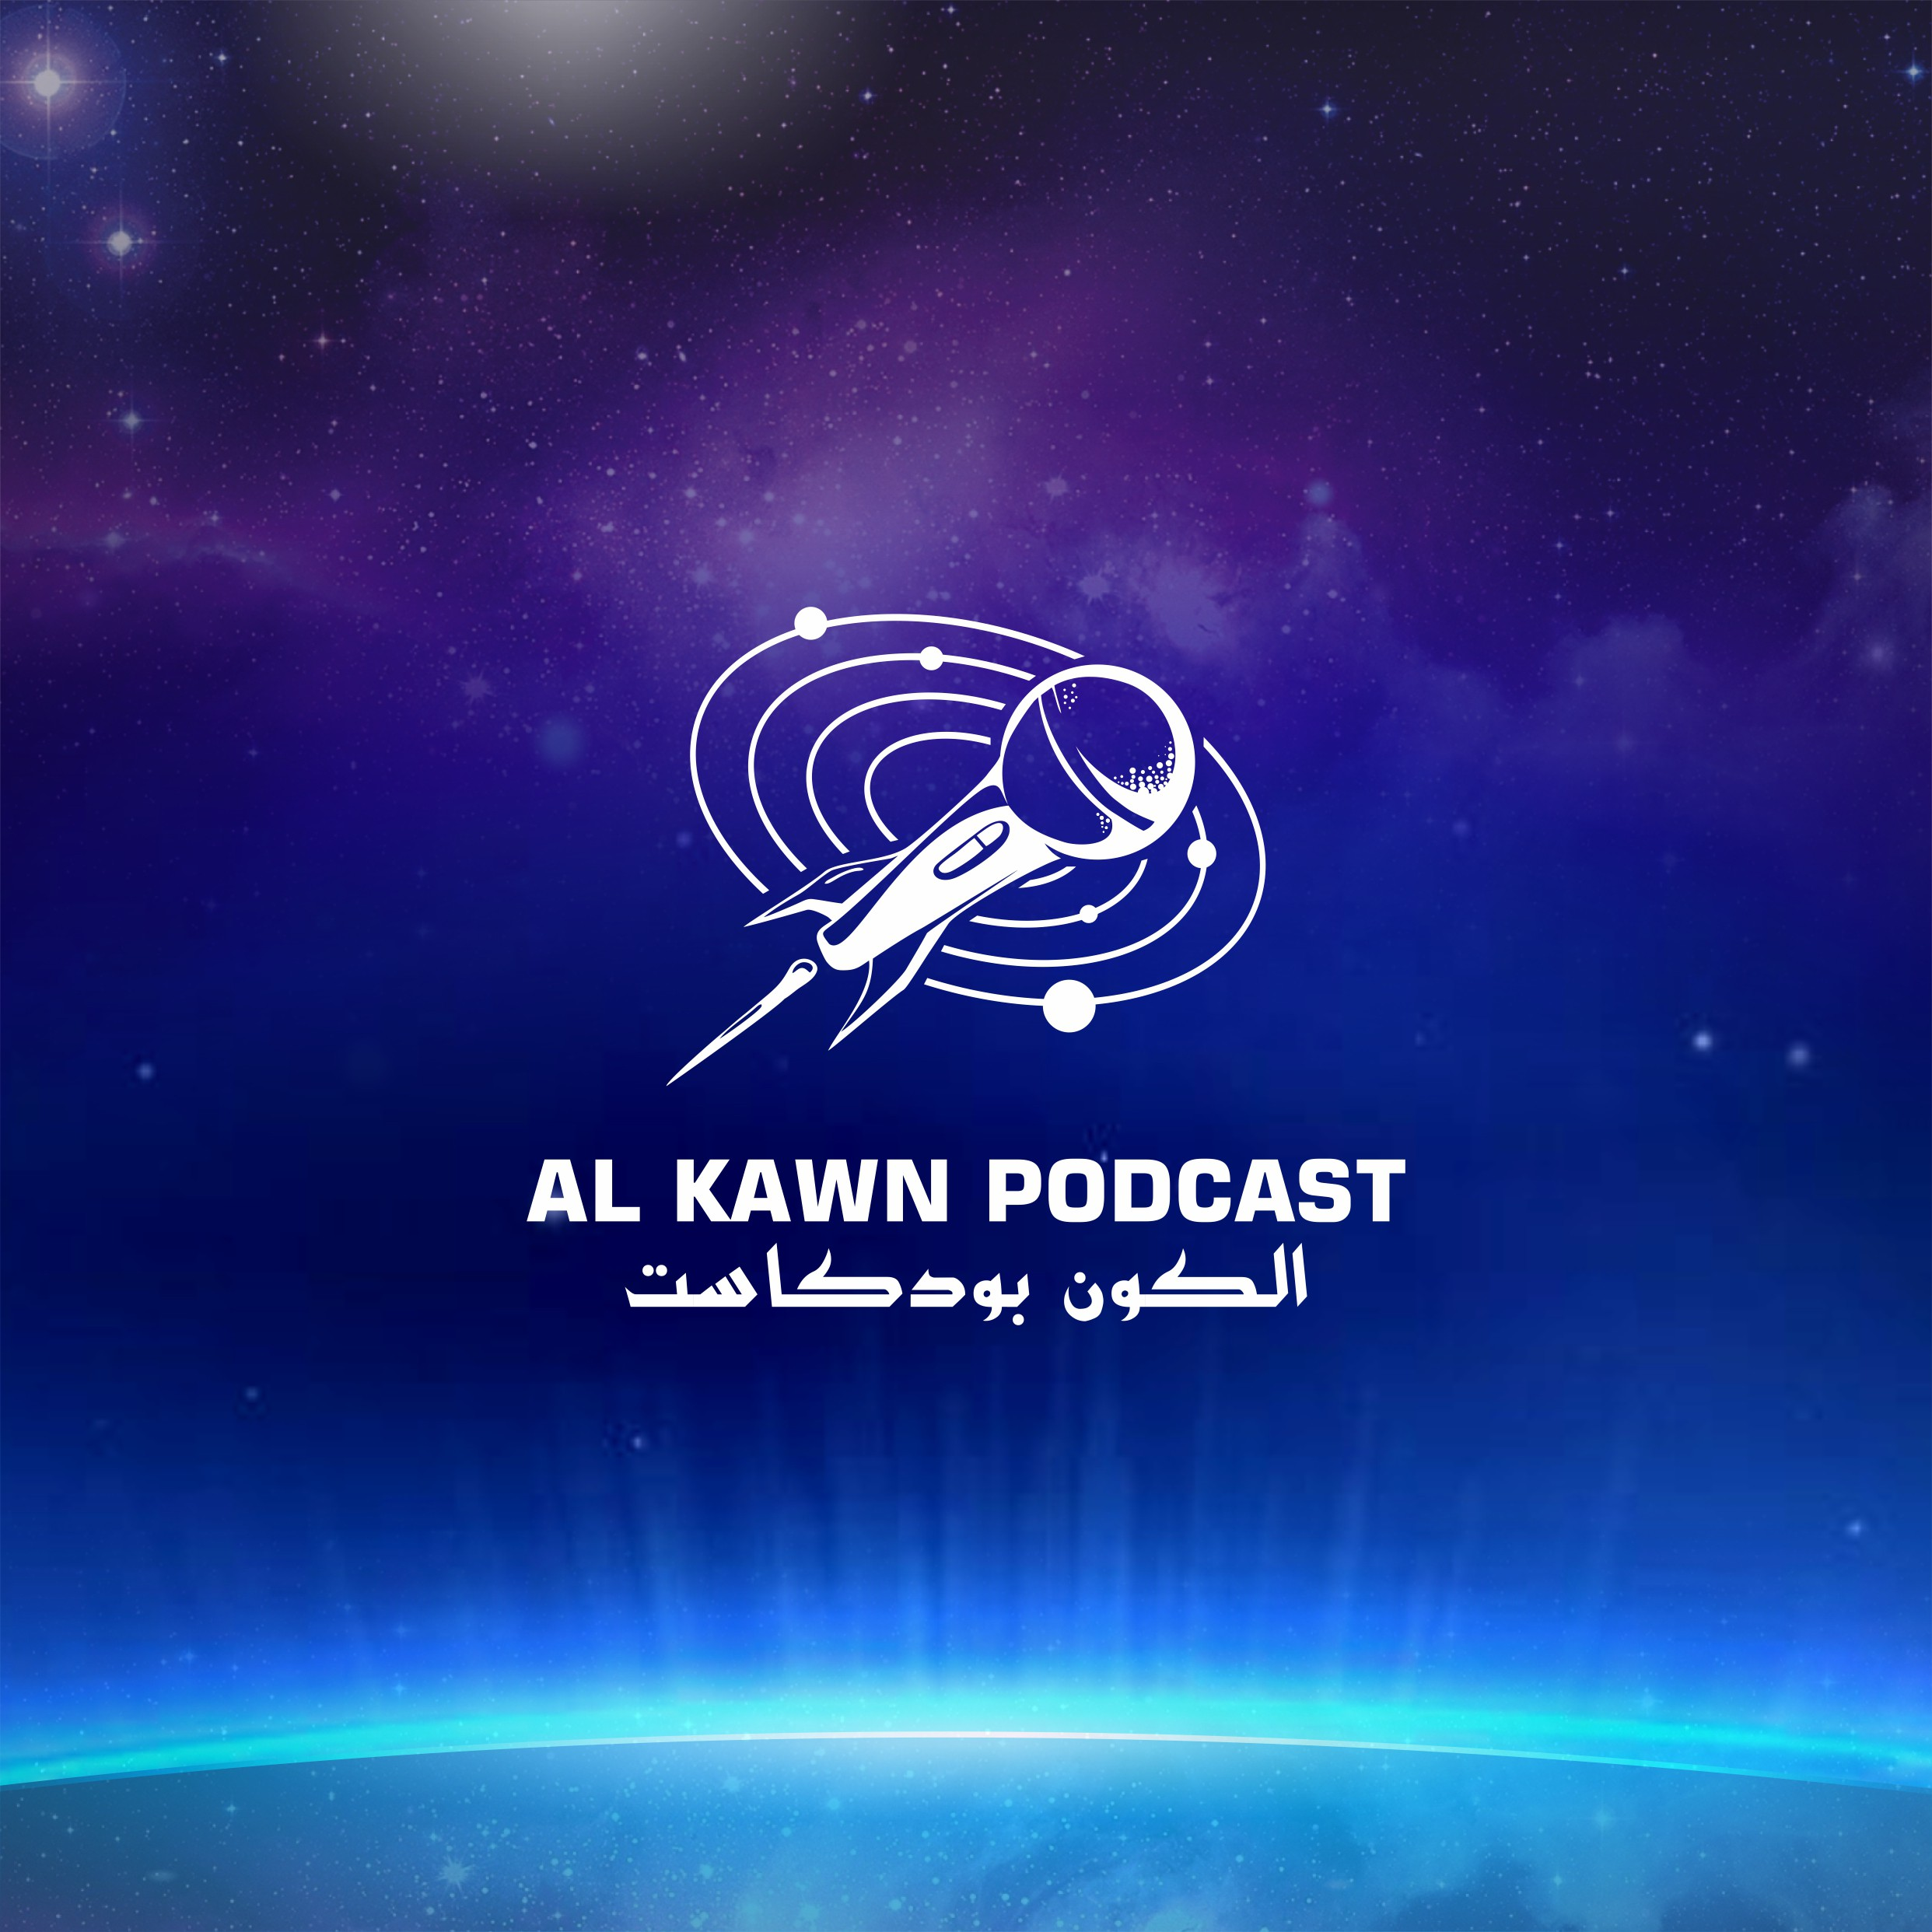 create simple and creative design for astronomy and science podcast